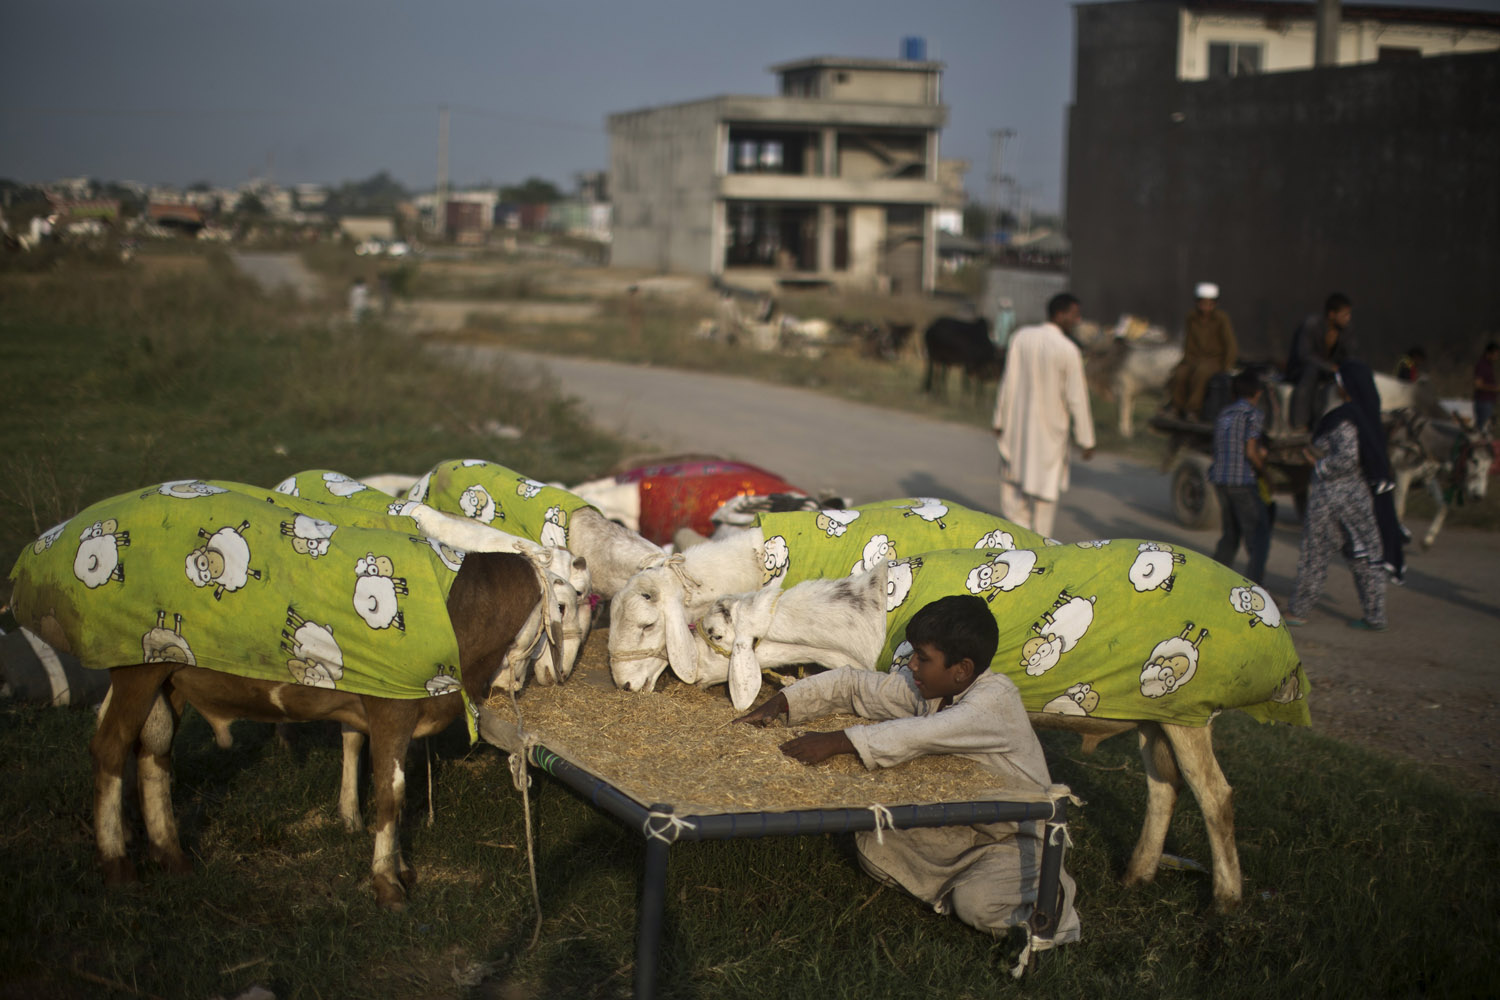 Oct. 7, 2013. A Pakistani boy feeds goats wearing sheep-print covers that are displayed for sale on a roadside, in preparation for the upcoming Muslim holiday of Eid al-Adha, or  Feast of Sacrifice,  on the outskirts of Islamabad, Pakistan.